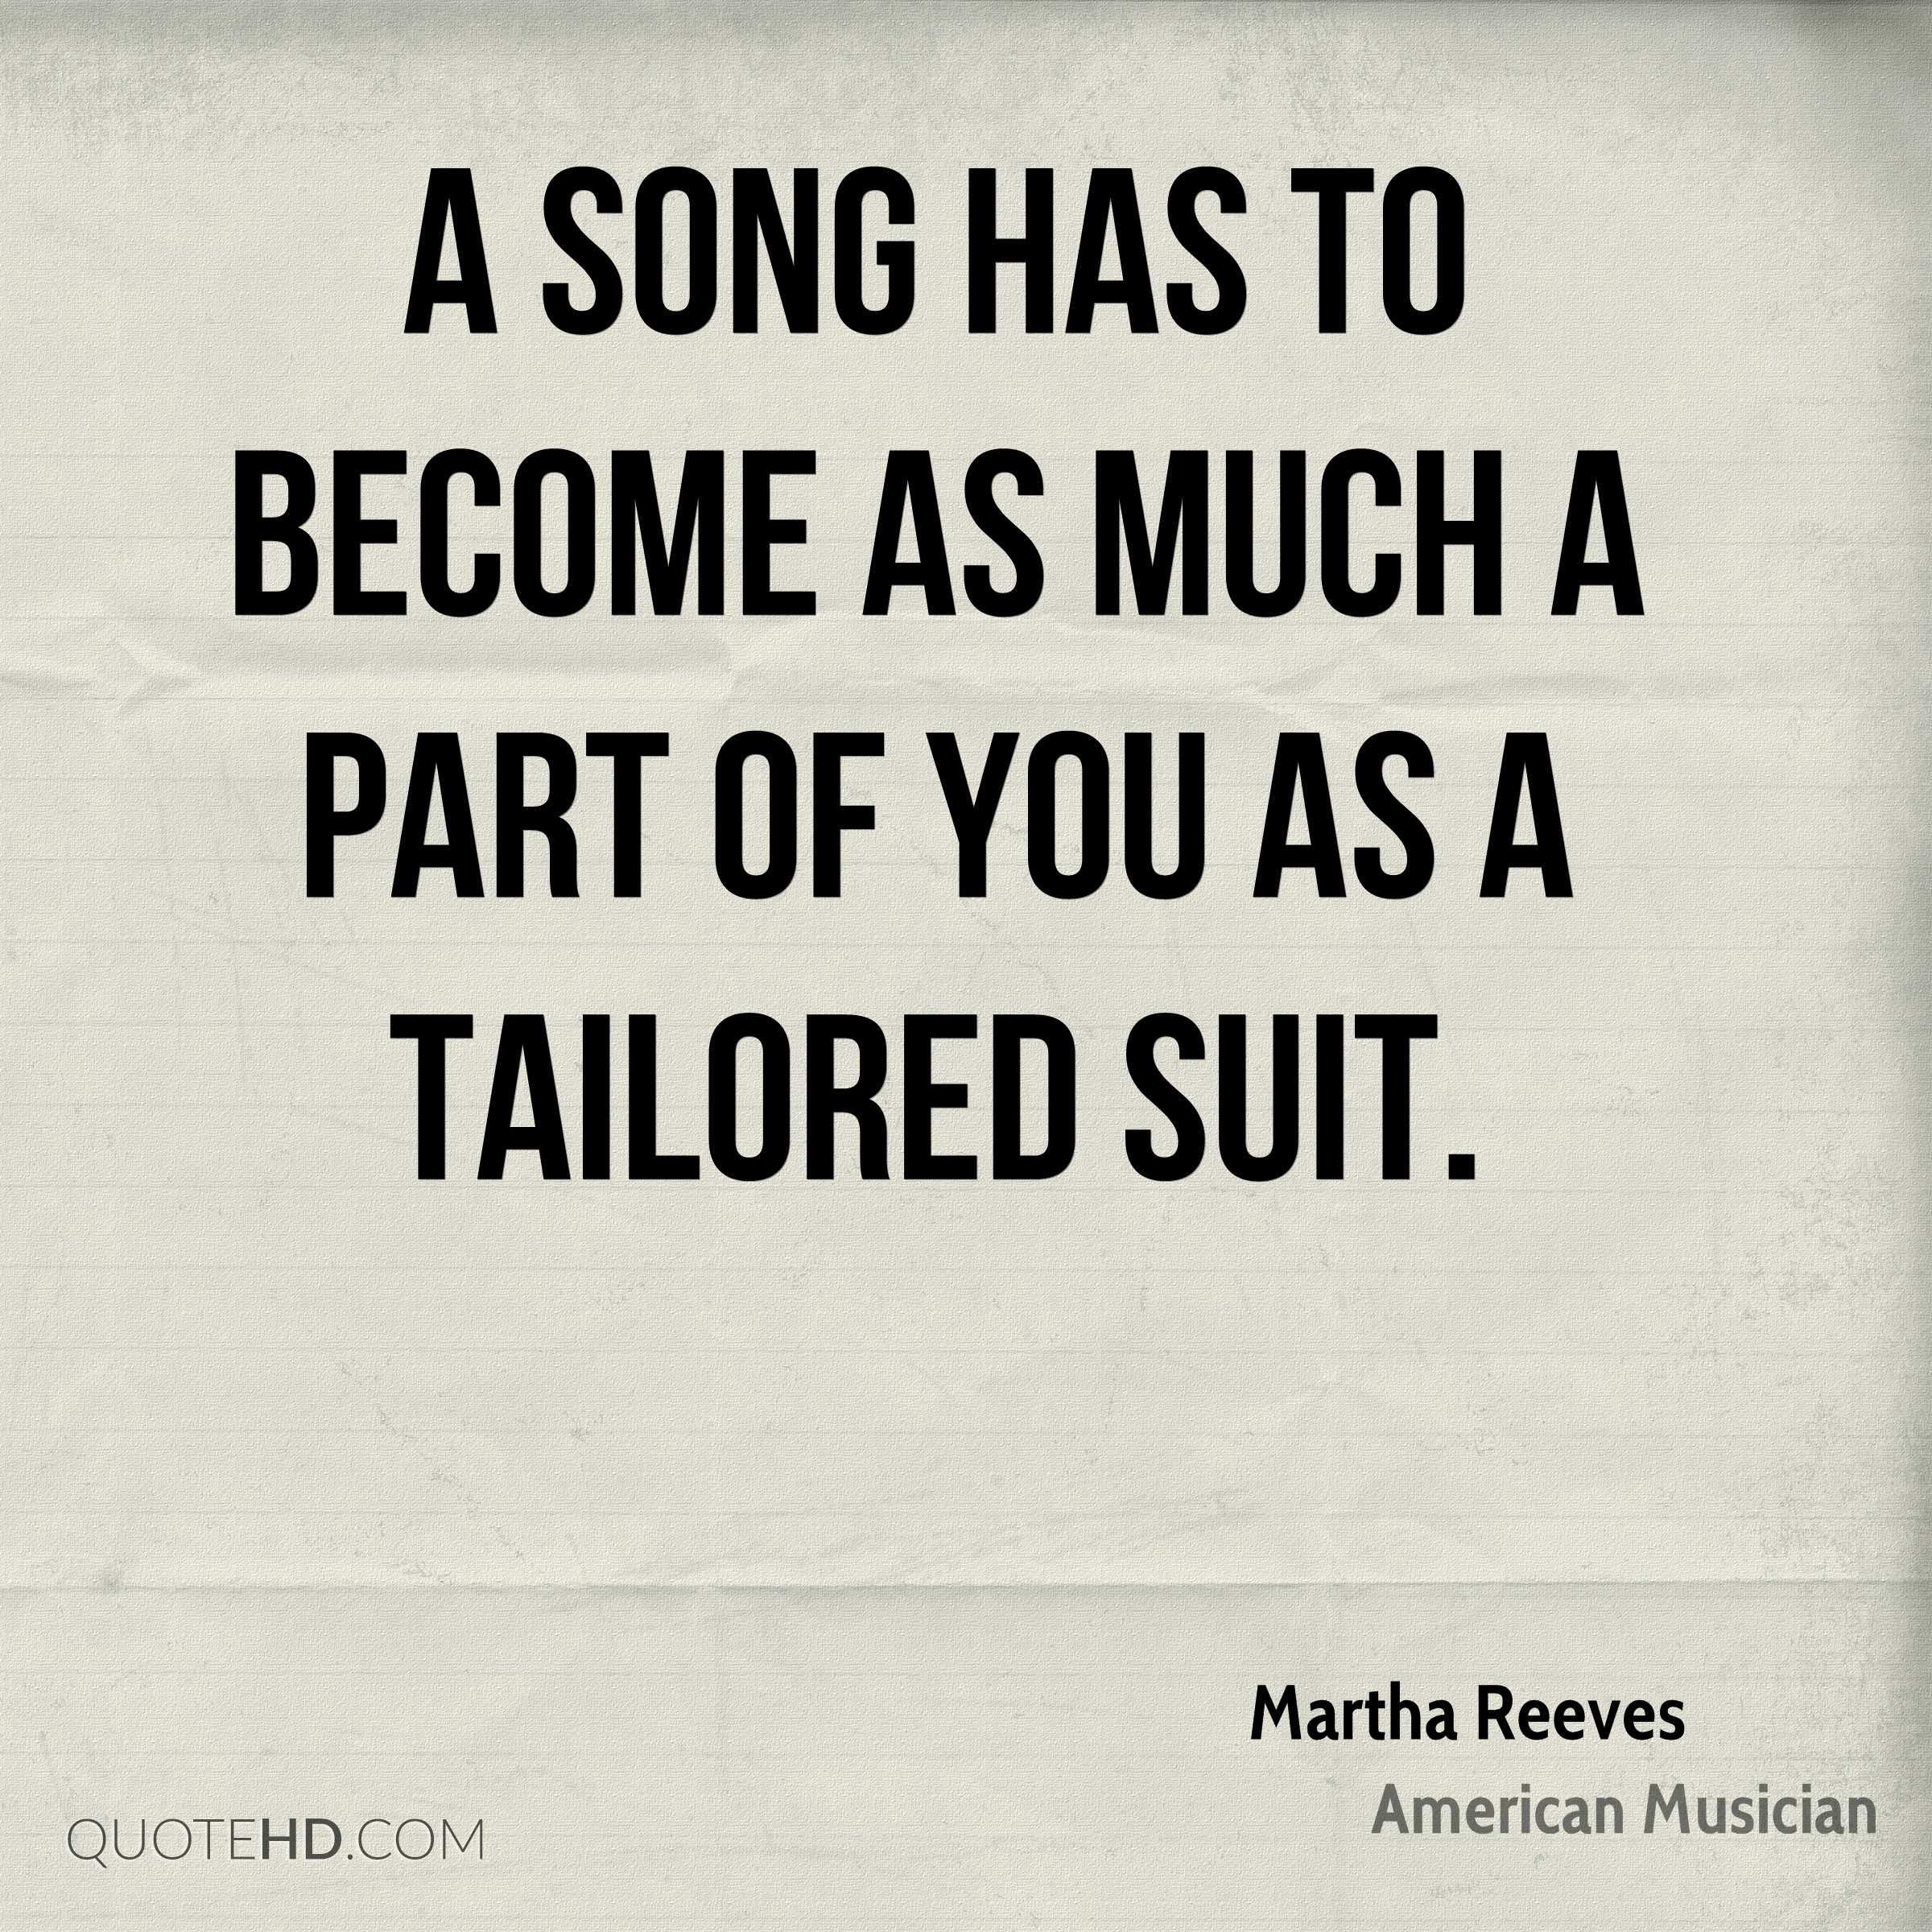 A song has to become as much a part of you as a tailored suit.